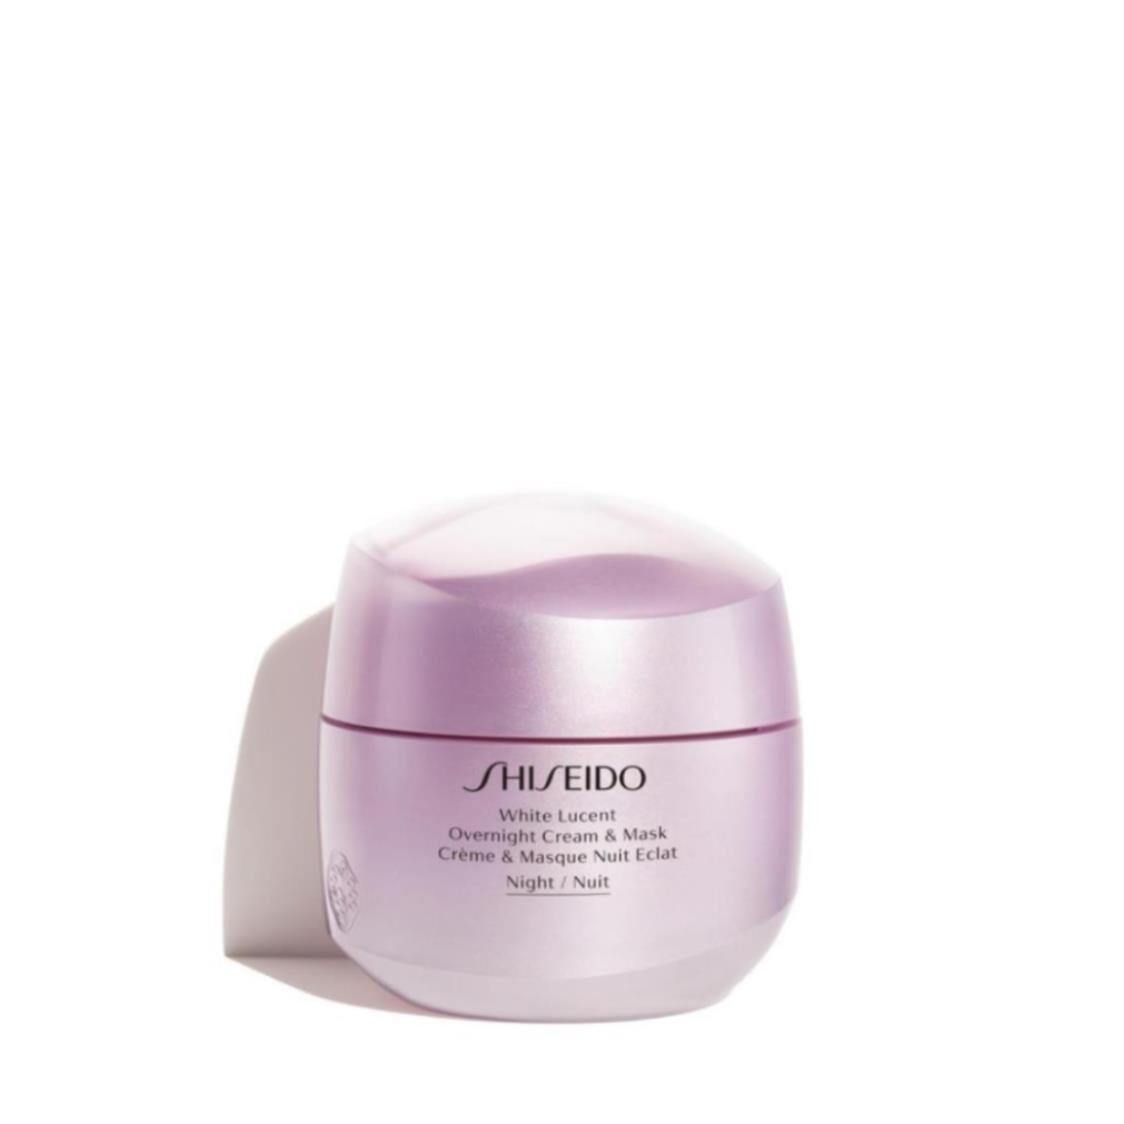 White Lucent Overnight Cream and Mask